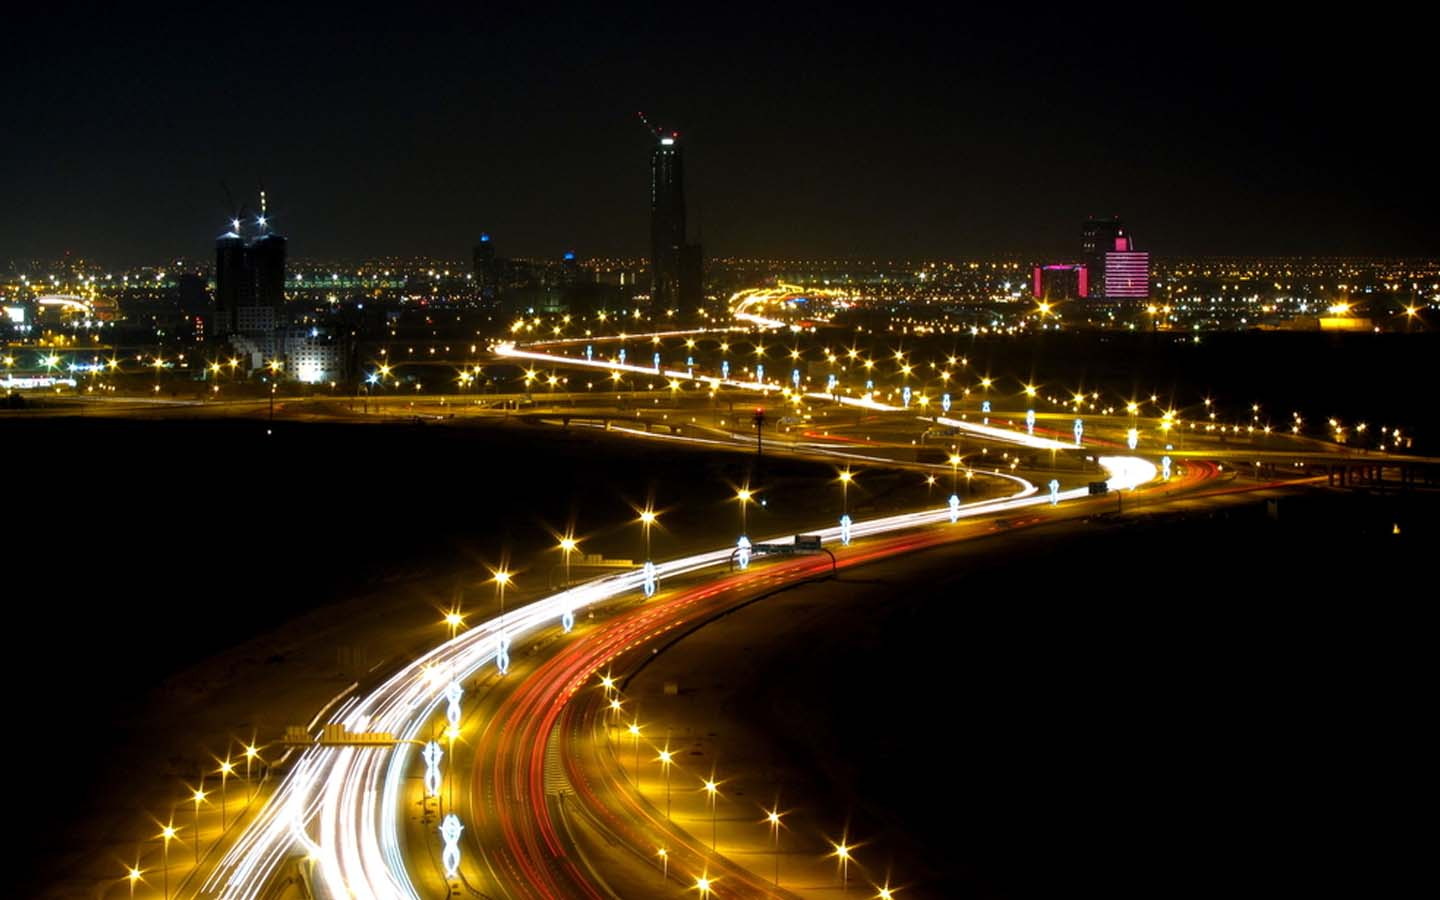 night view of Al Khail Road